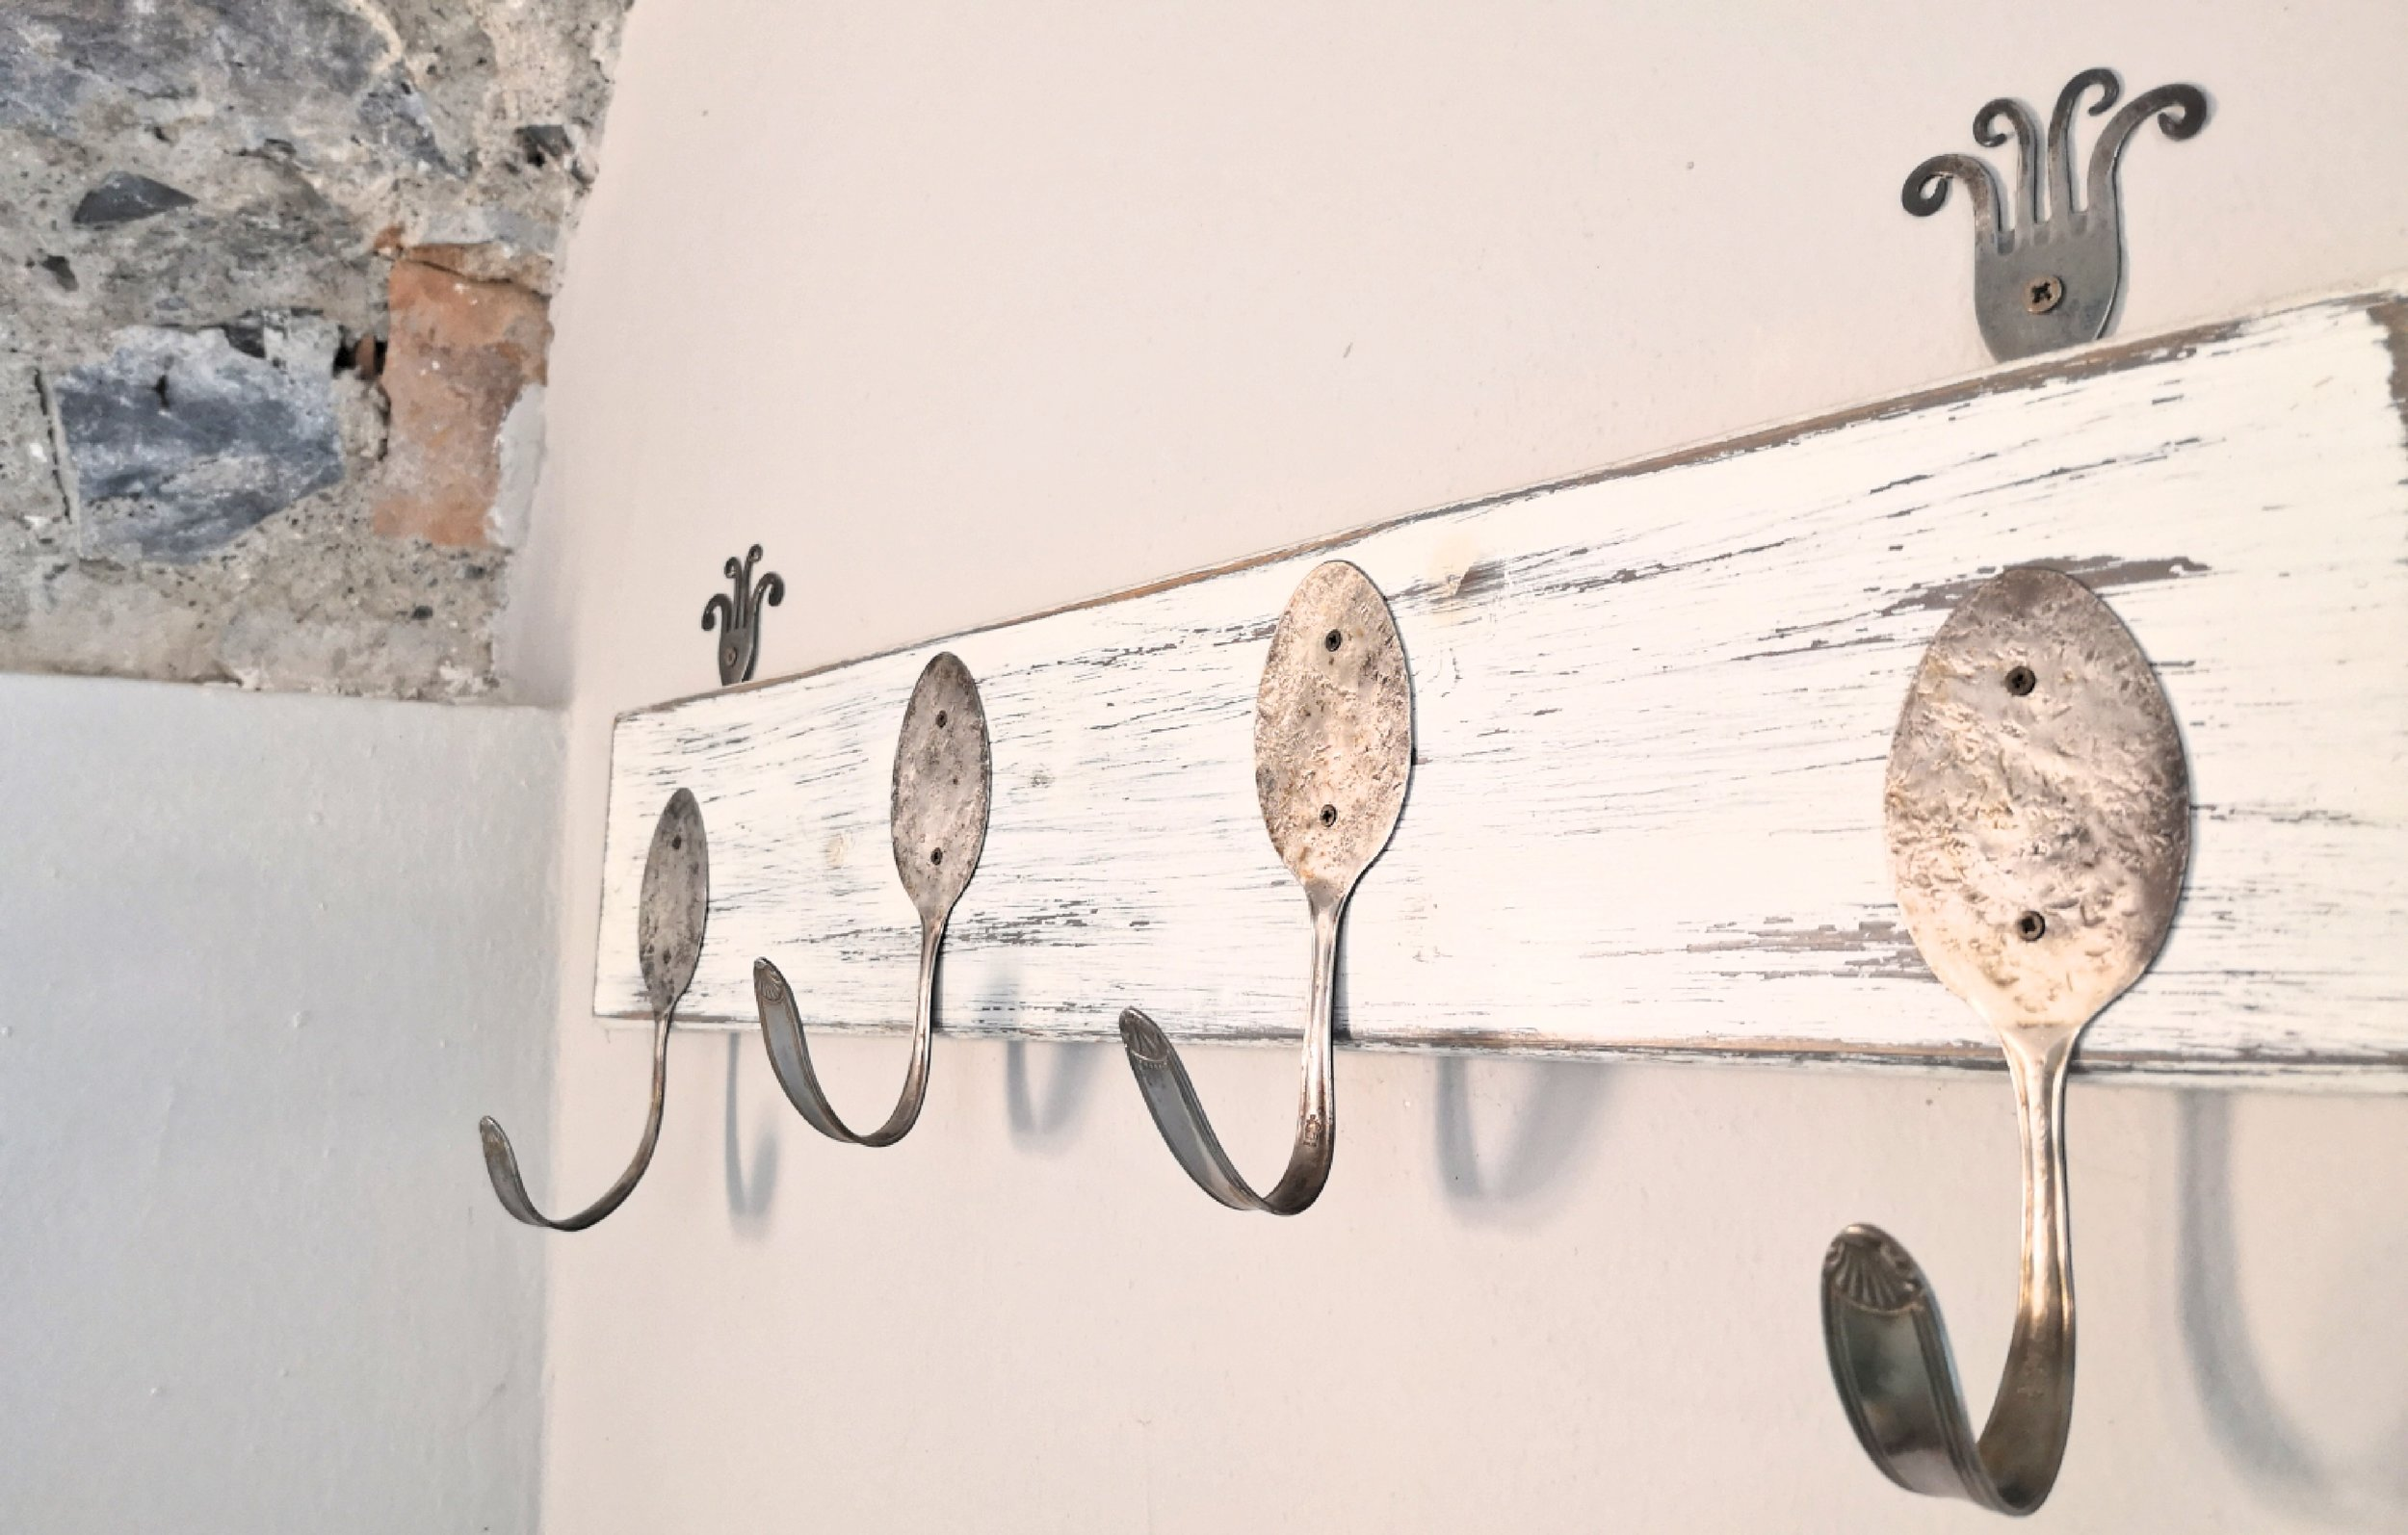 Our hook made of vintage spoons